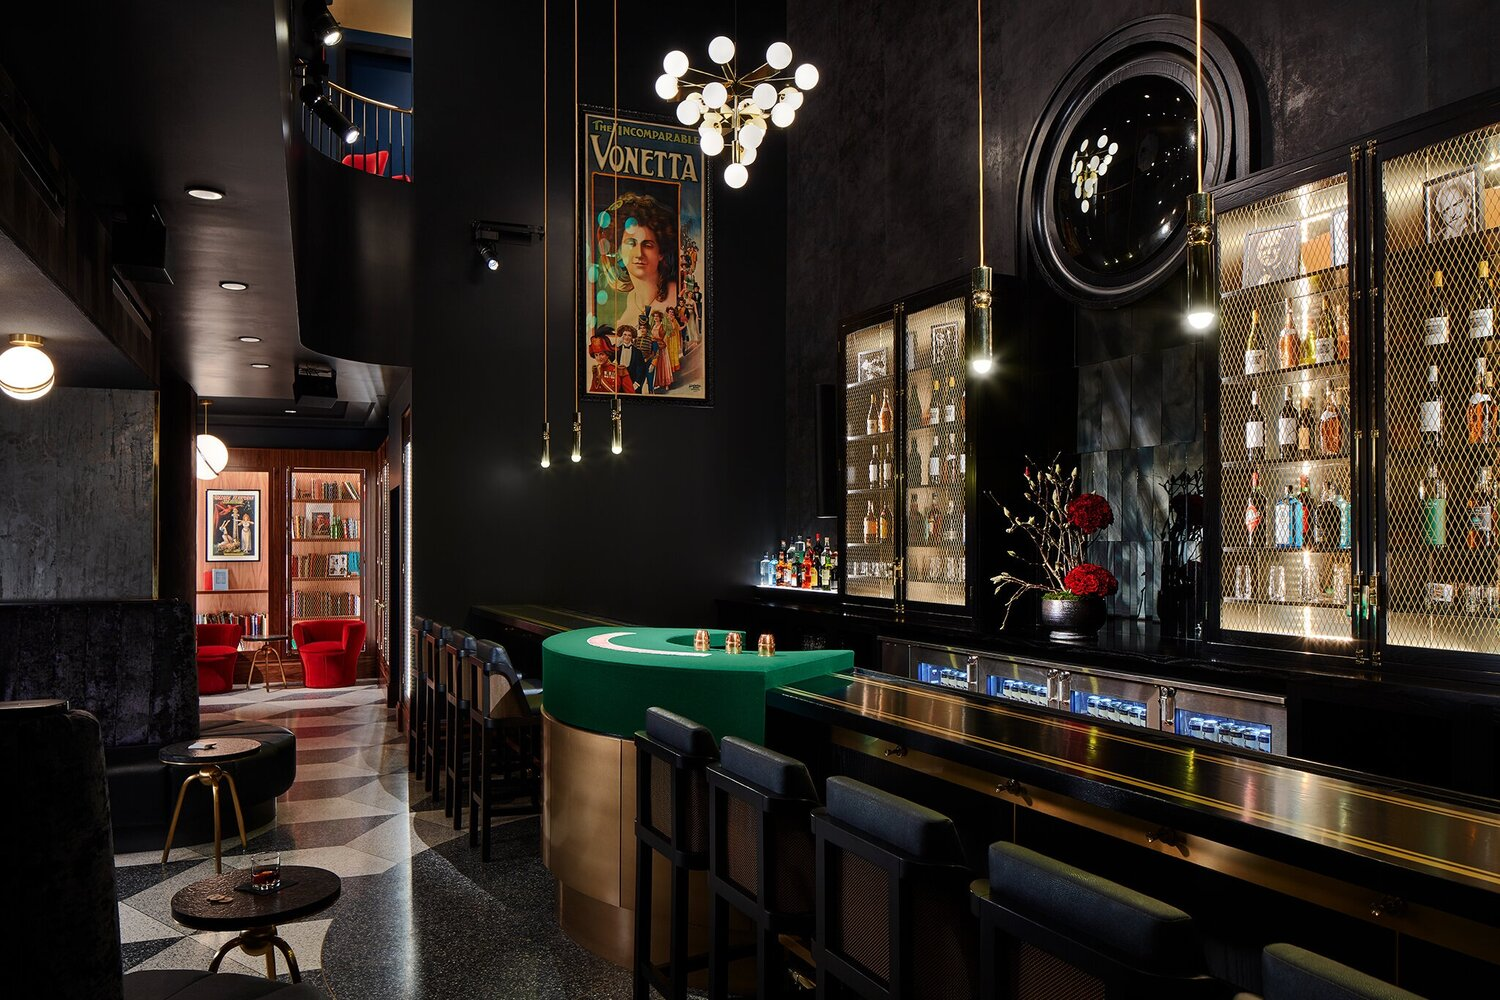 Performance Bar - Intimate Cocktail Lounge, PErfect for Smaller Gatherings